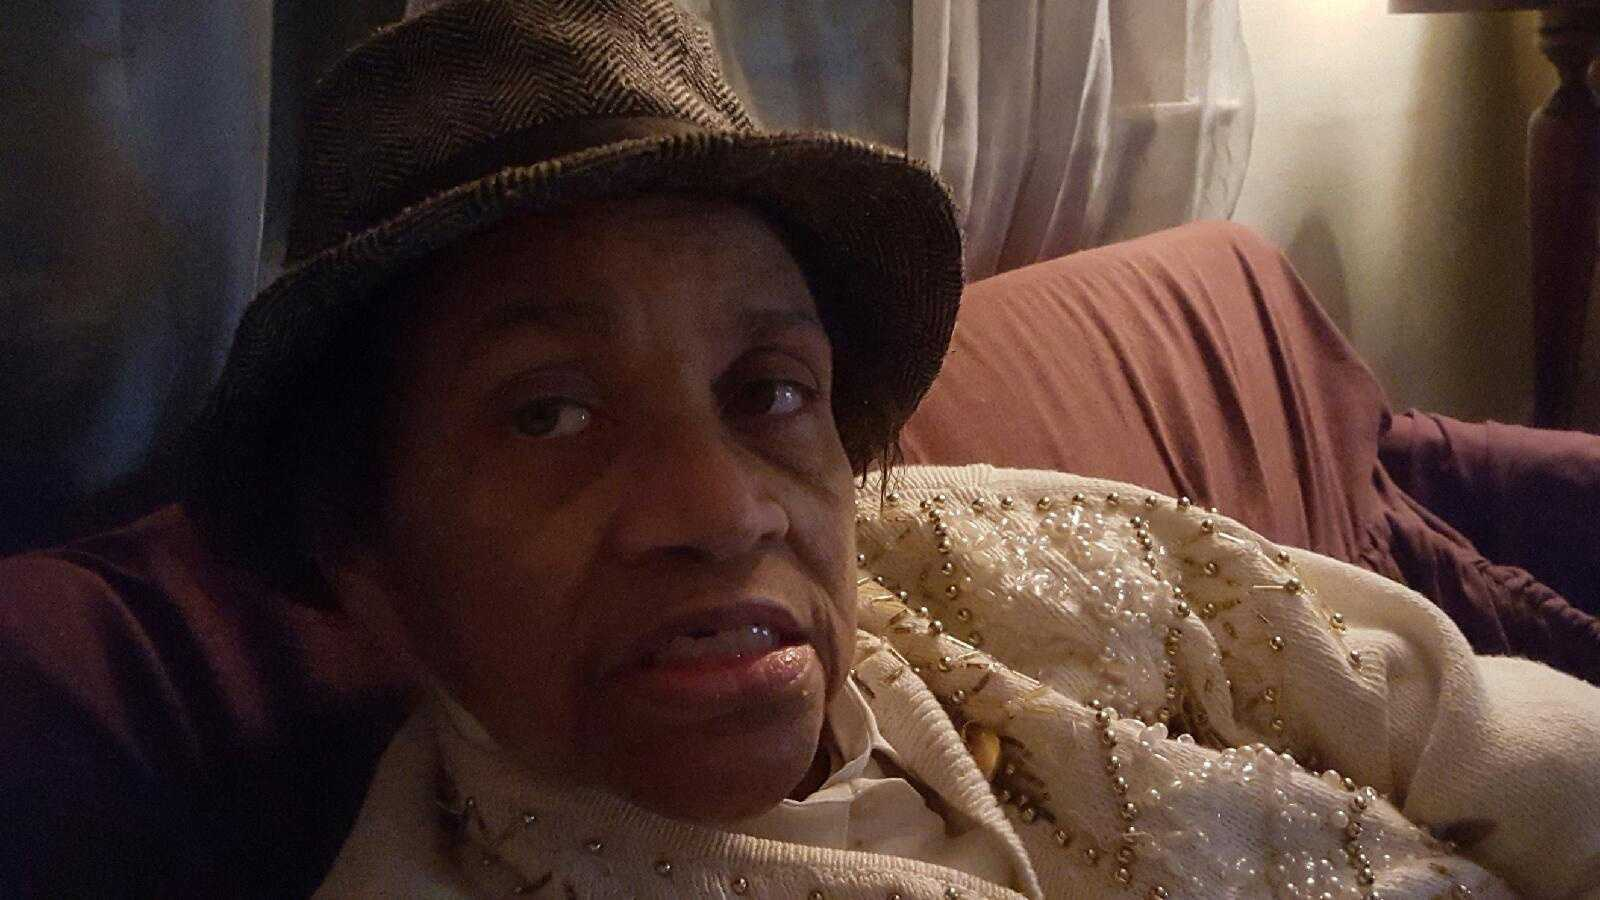 Linda Carroll, 66, was reported missing on Jan. 22, 2016. Her family says she suffers from dementia